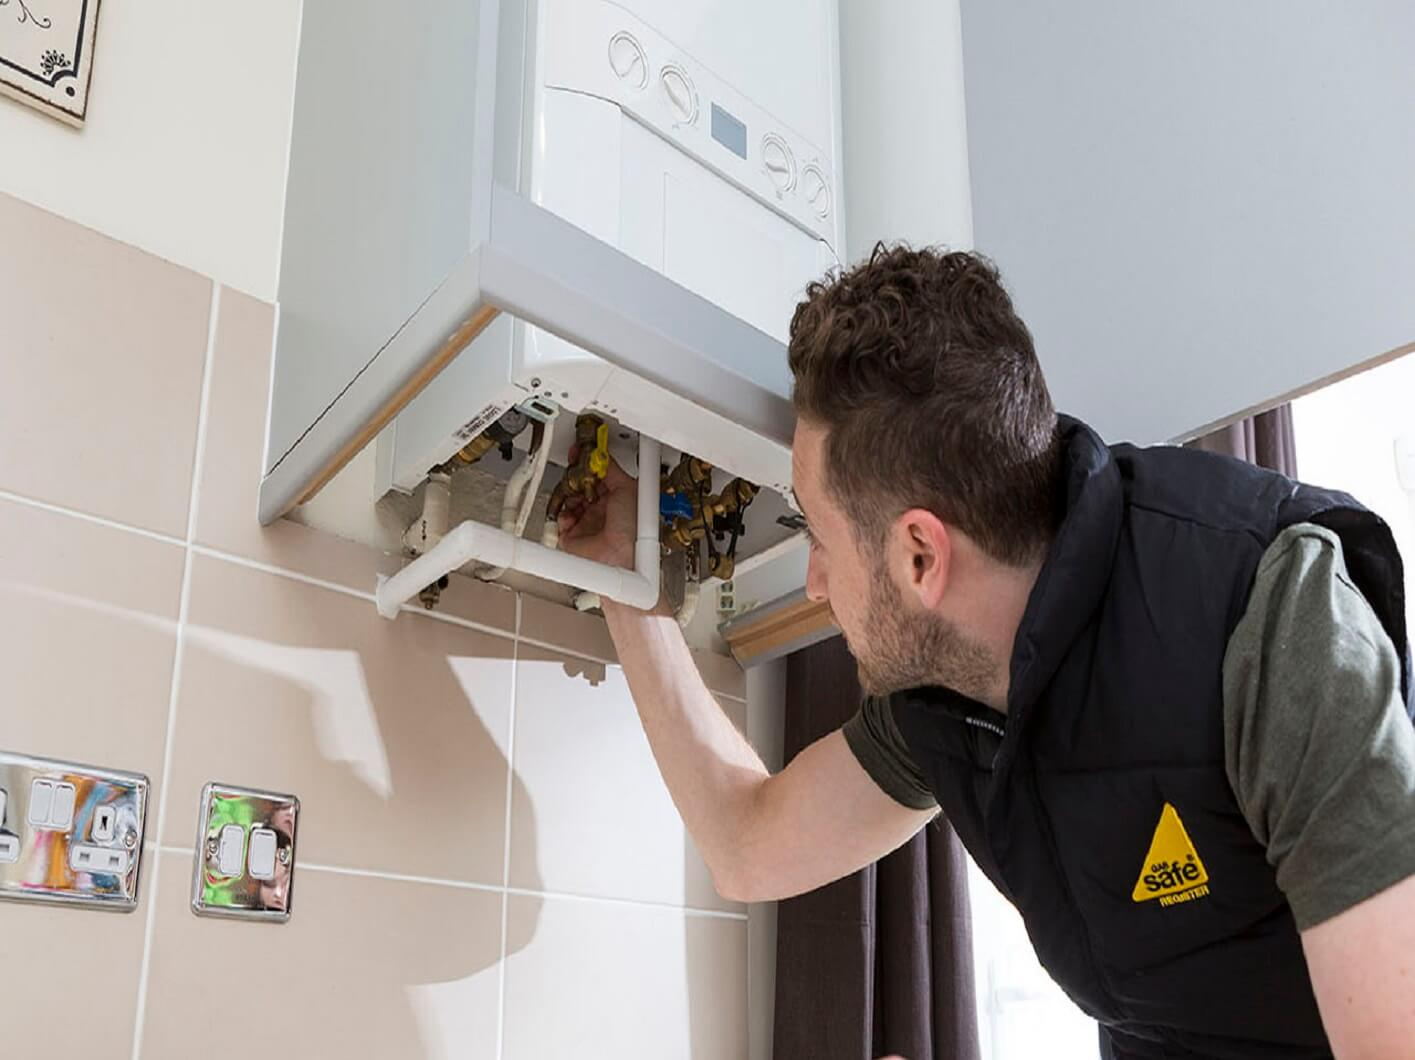 Boiler Installation Medway - Reliable Plumbers & Heating Engineers Ltd are Gas Safe Registered-114518